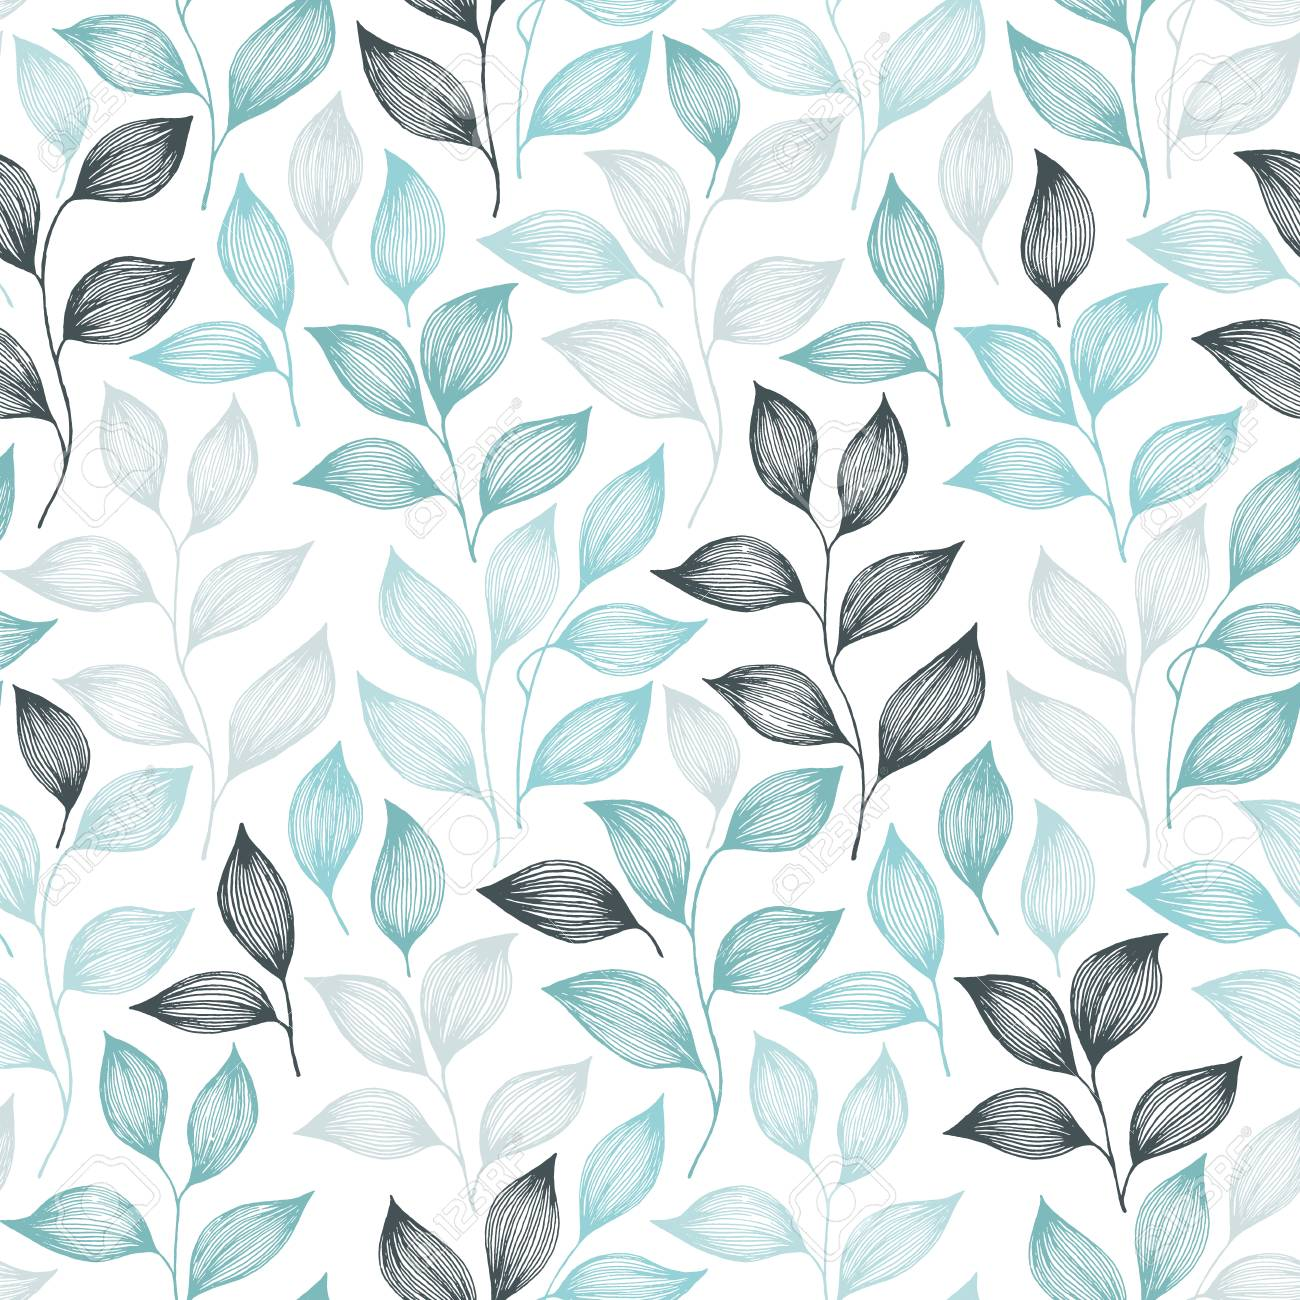 Packaging tea leaves pattern seamless vector. Minimal tea plant bush leaves floral fabric design. Herbal sketchy seamless background pattern with nature elements. Colored summer foliage wallpaper. - 123346928